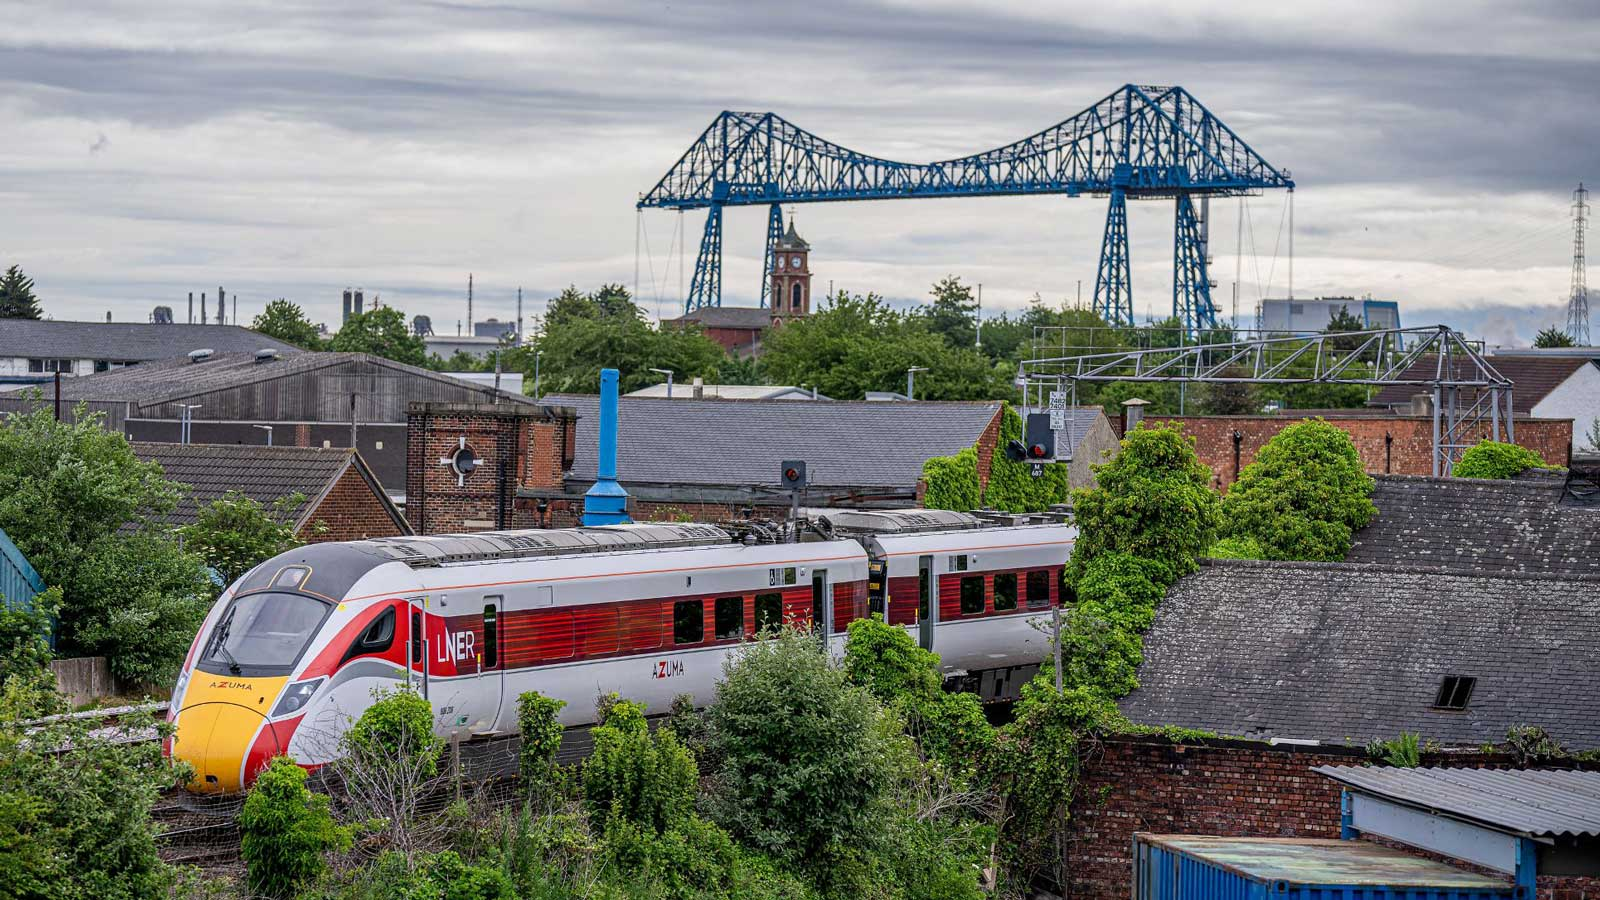 Date set for new LNER direct services between Middlesbrough and London